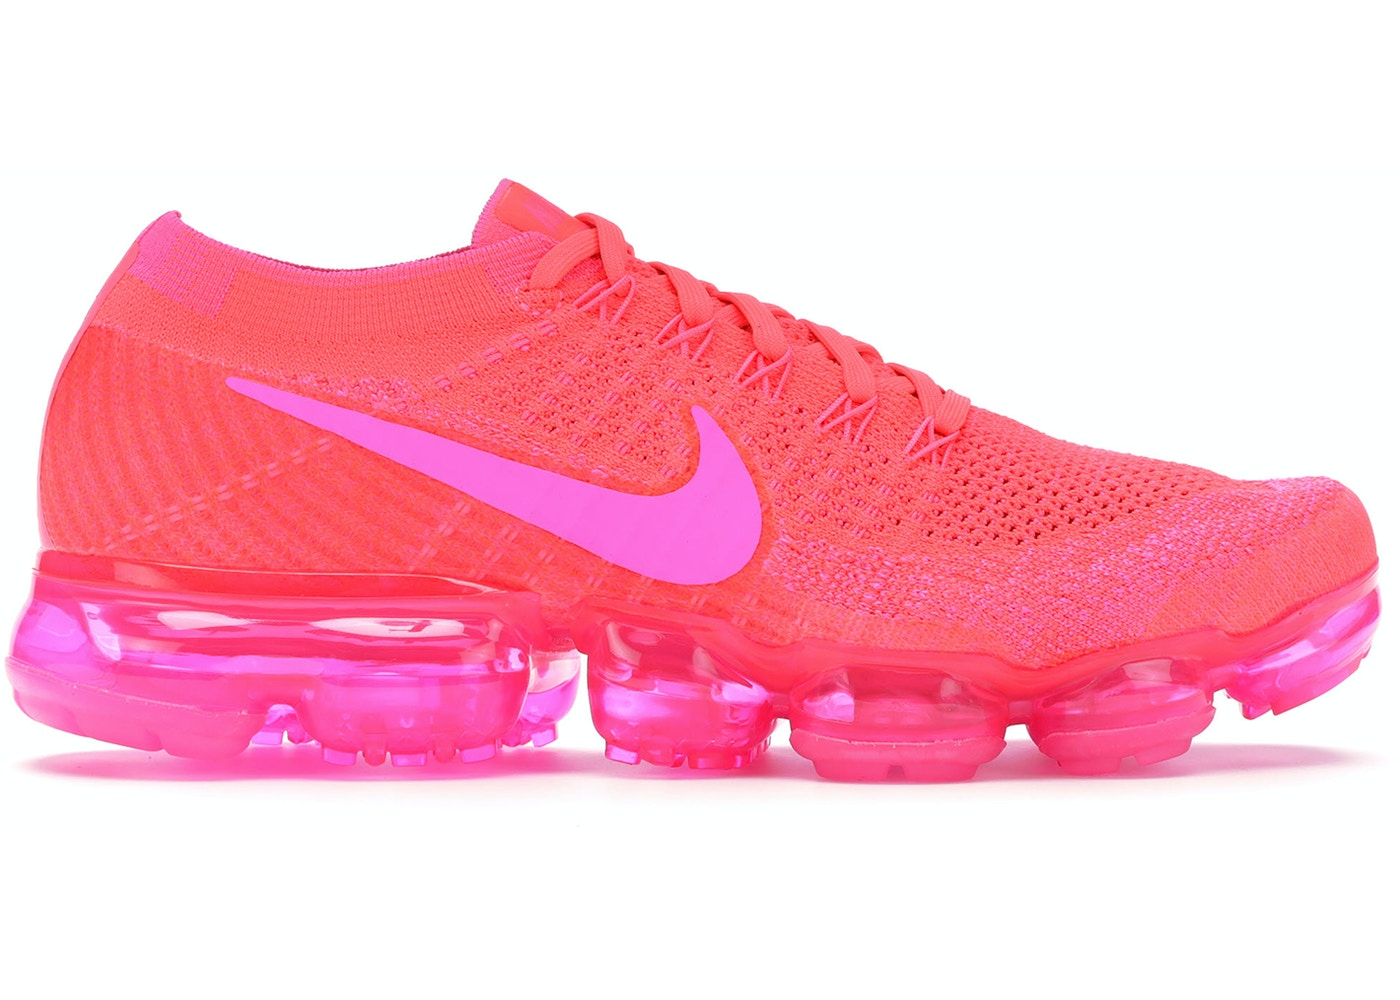 reputable site 341d3 32e17 Air VaporMax Hyper Punch (W)